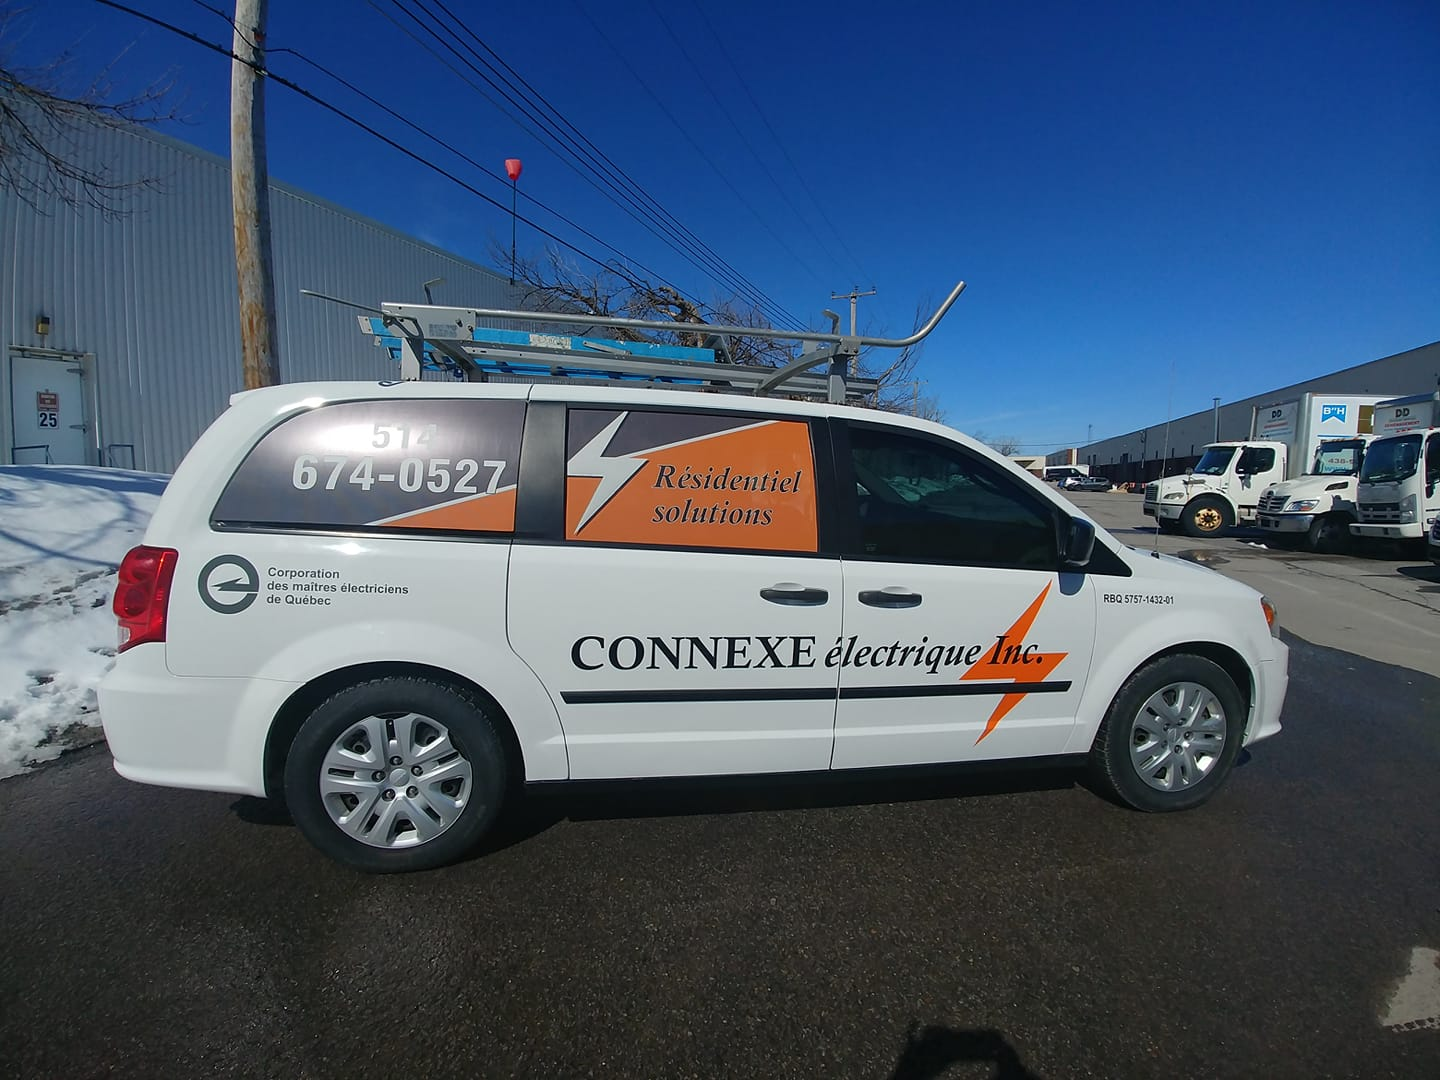 Vehicle Lettering - Connexe van...ready to go